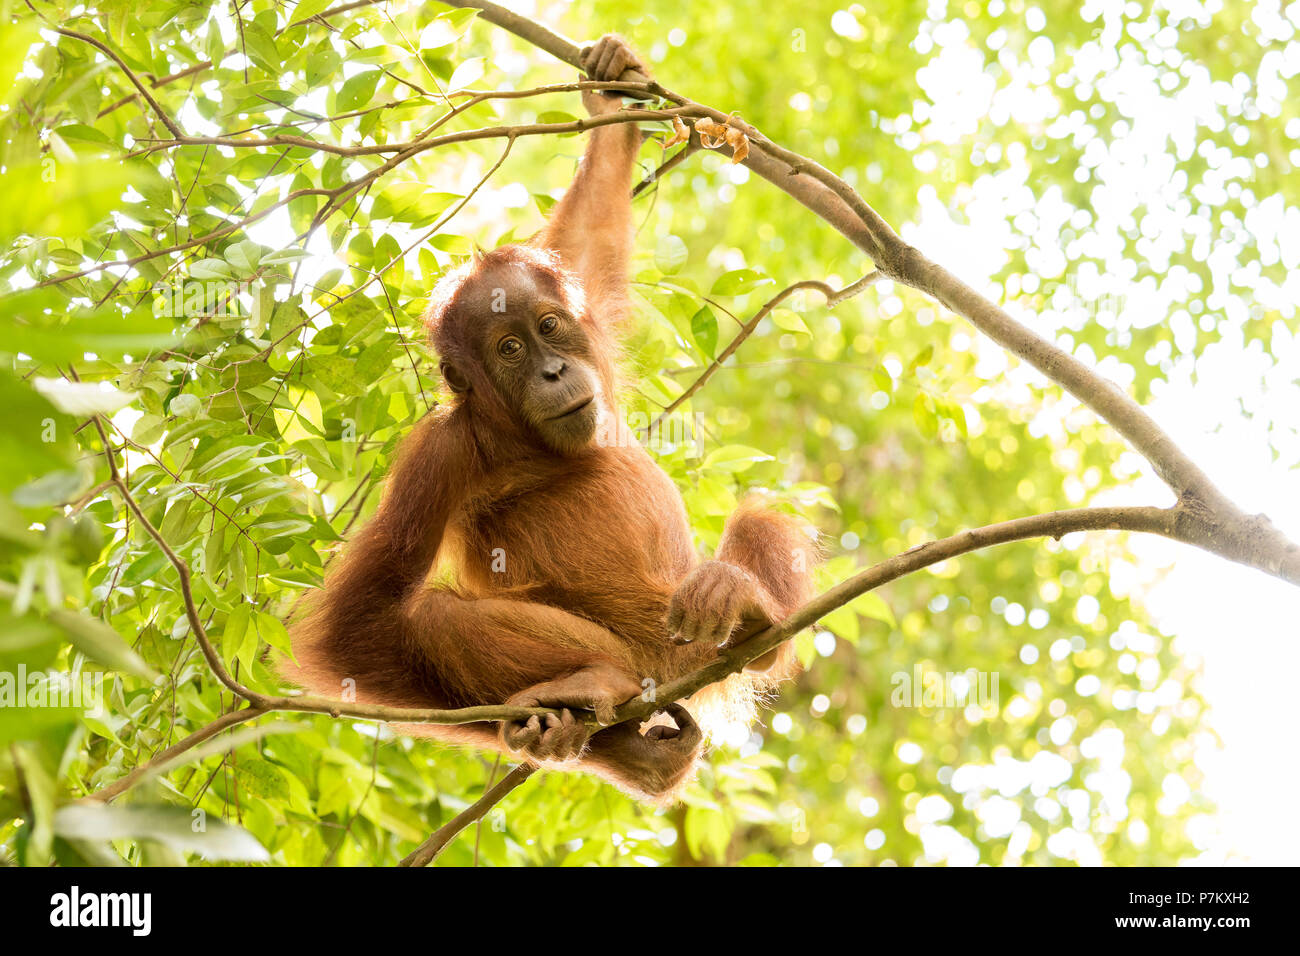 Young orangutan in the jungle, sitting on thin branches and looking relaxed into the camera, - Stock Image